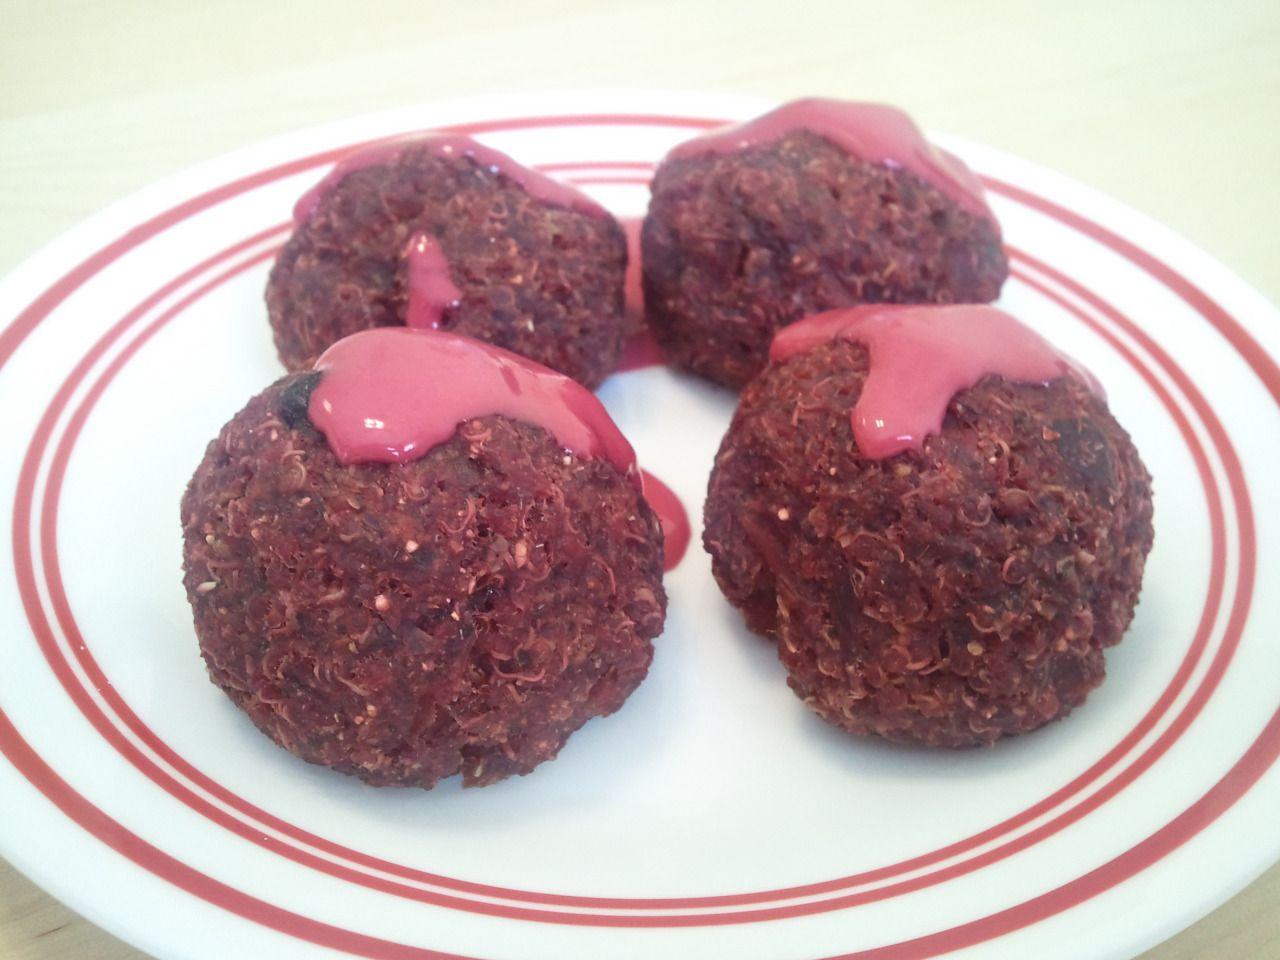 Quinoa and Beetroot Balls with Red Velvet Tahini Sauce These dish is a great addition to any salad-based meal, but can perfectly suit any other meal as well, including serving as the main course. For...